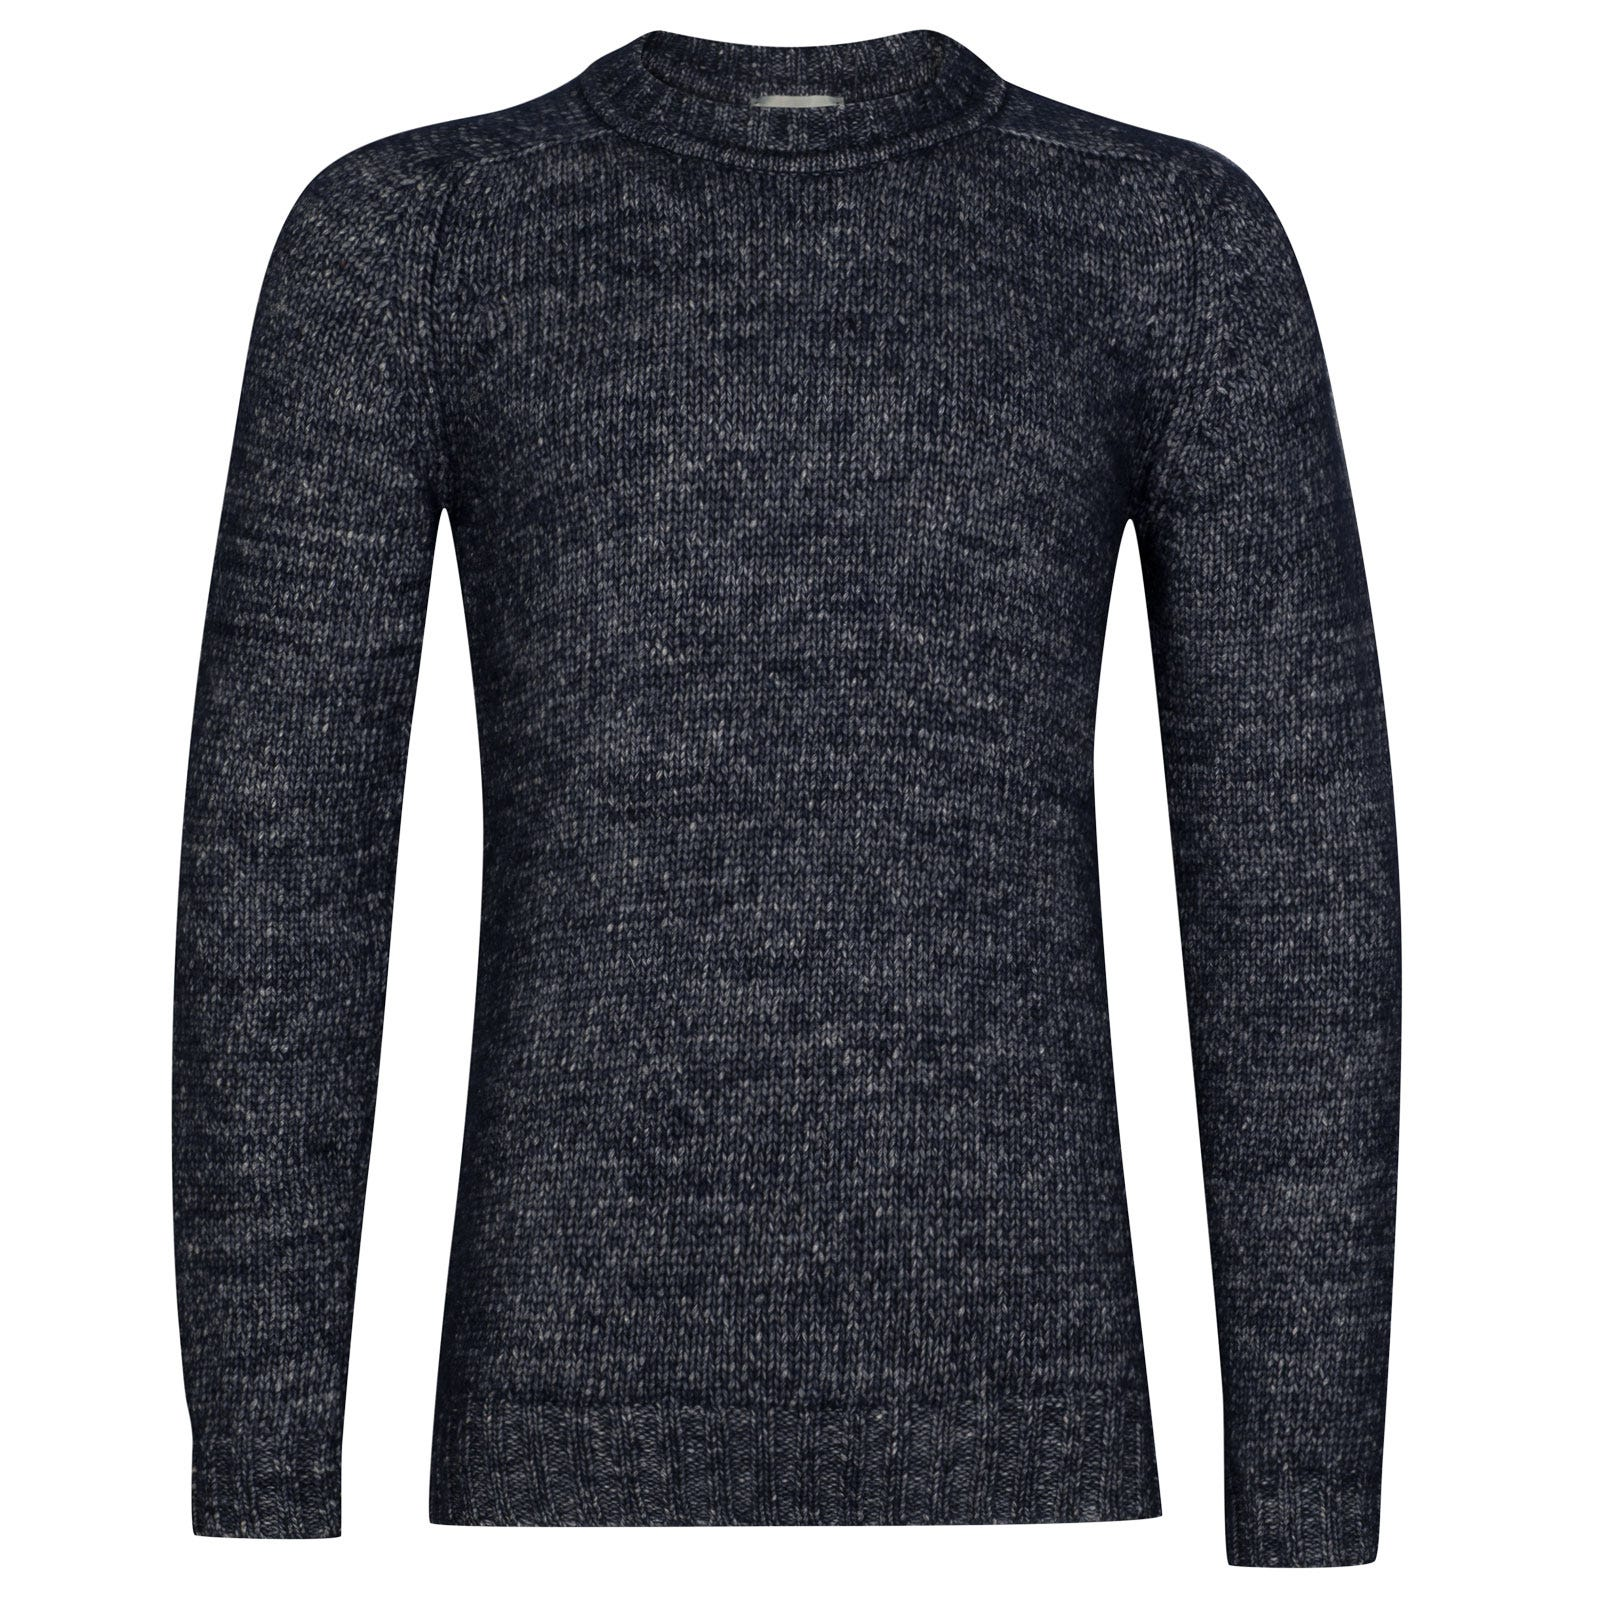 John Smedley storr Alpaca, Wool & Cotton Pullover in midnight-XXL